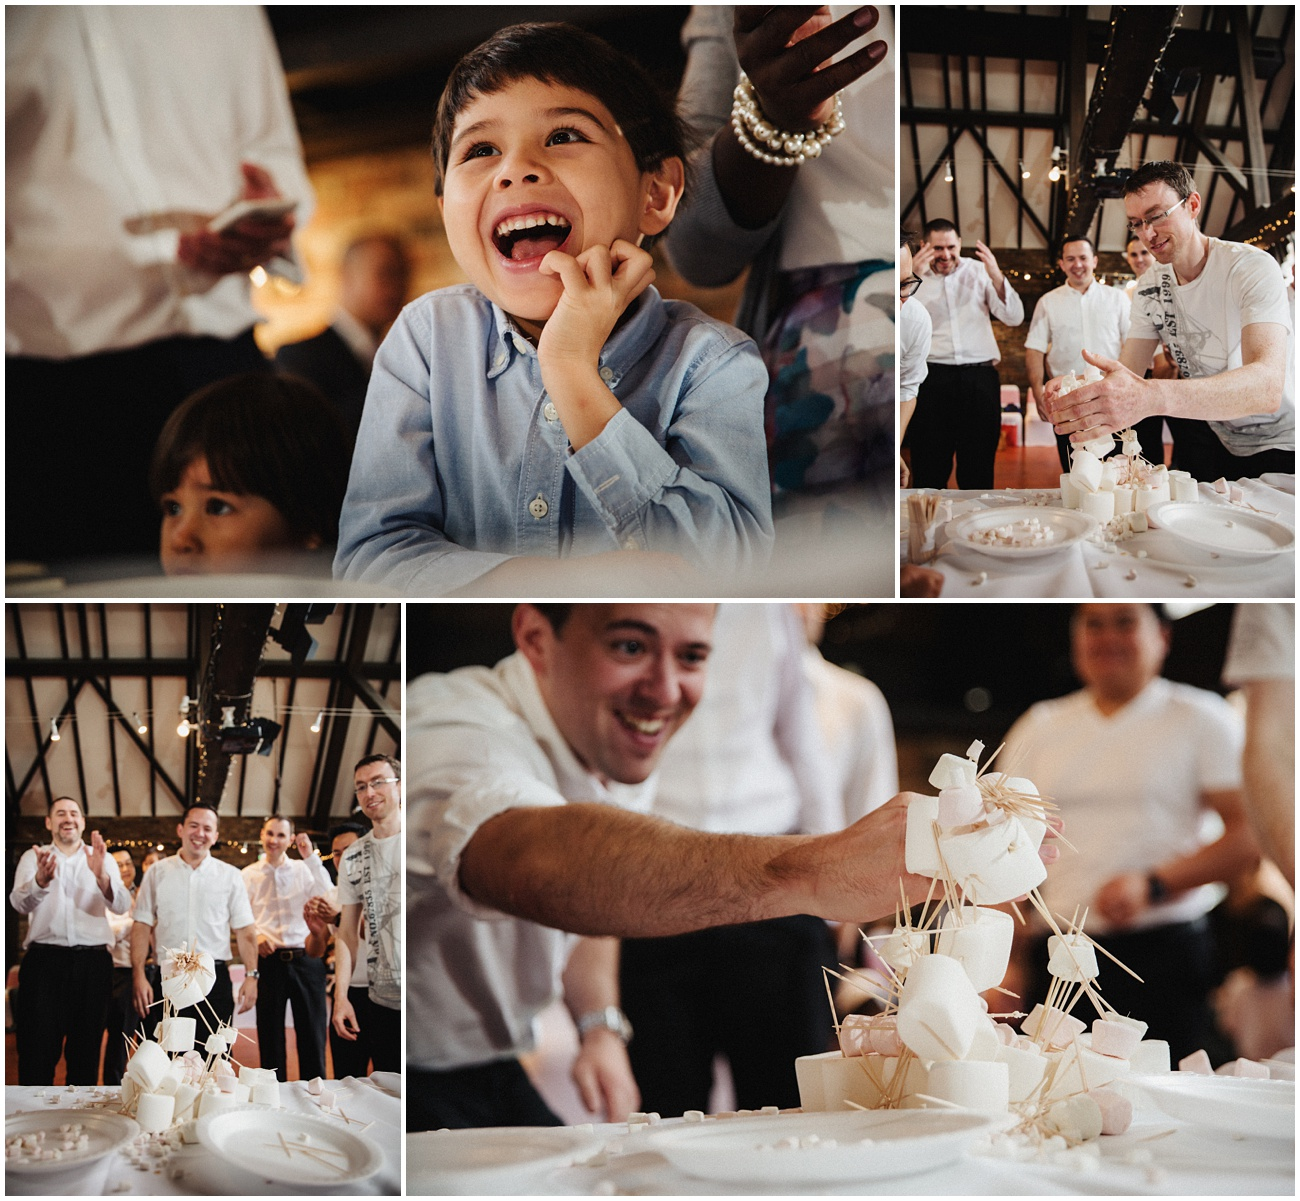 The groomsmen build a tower made from marshmallows and toothpicks